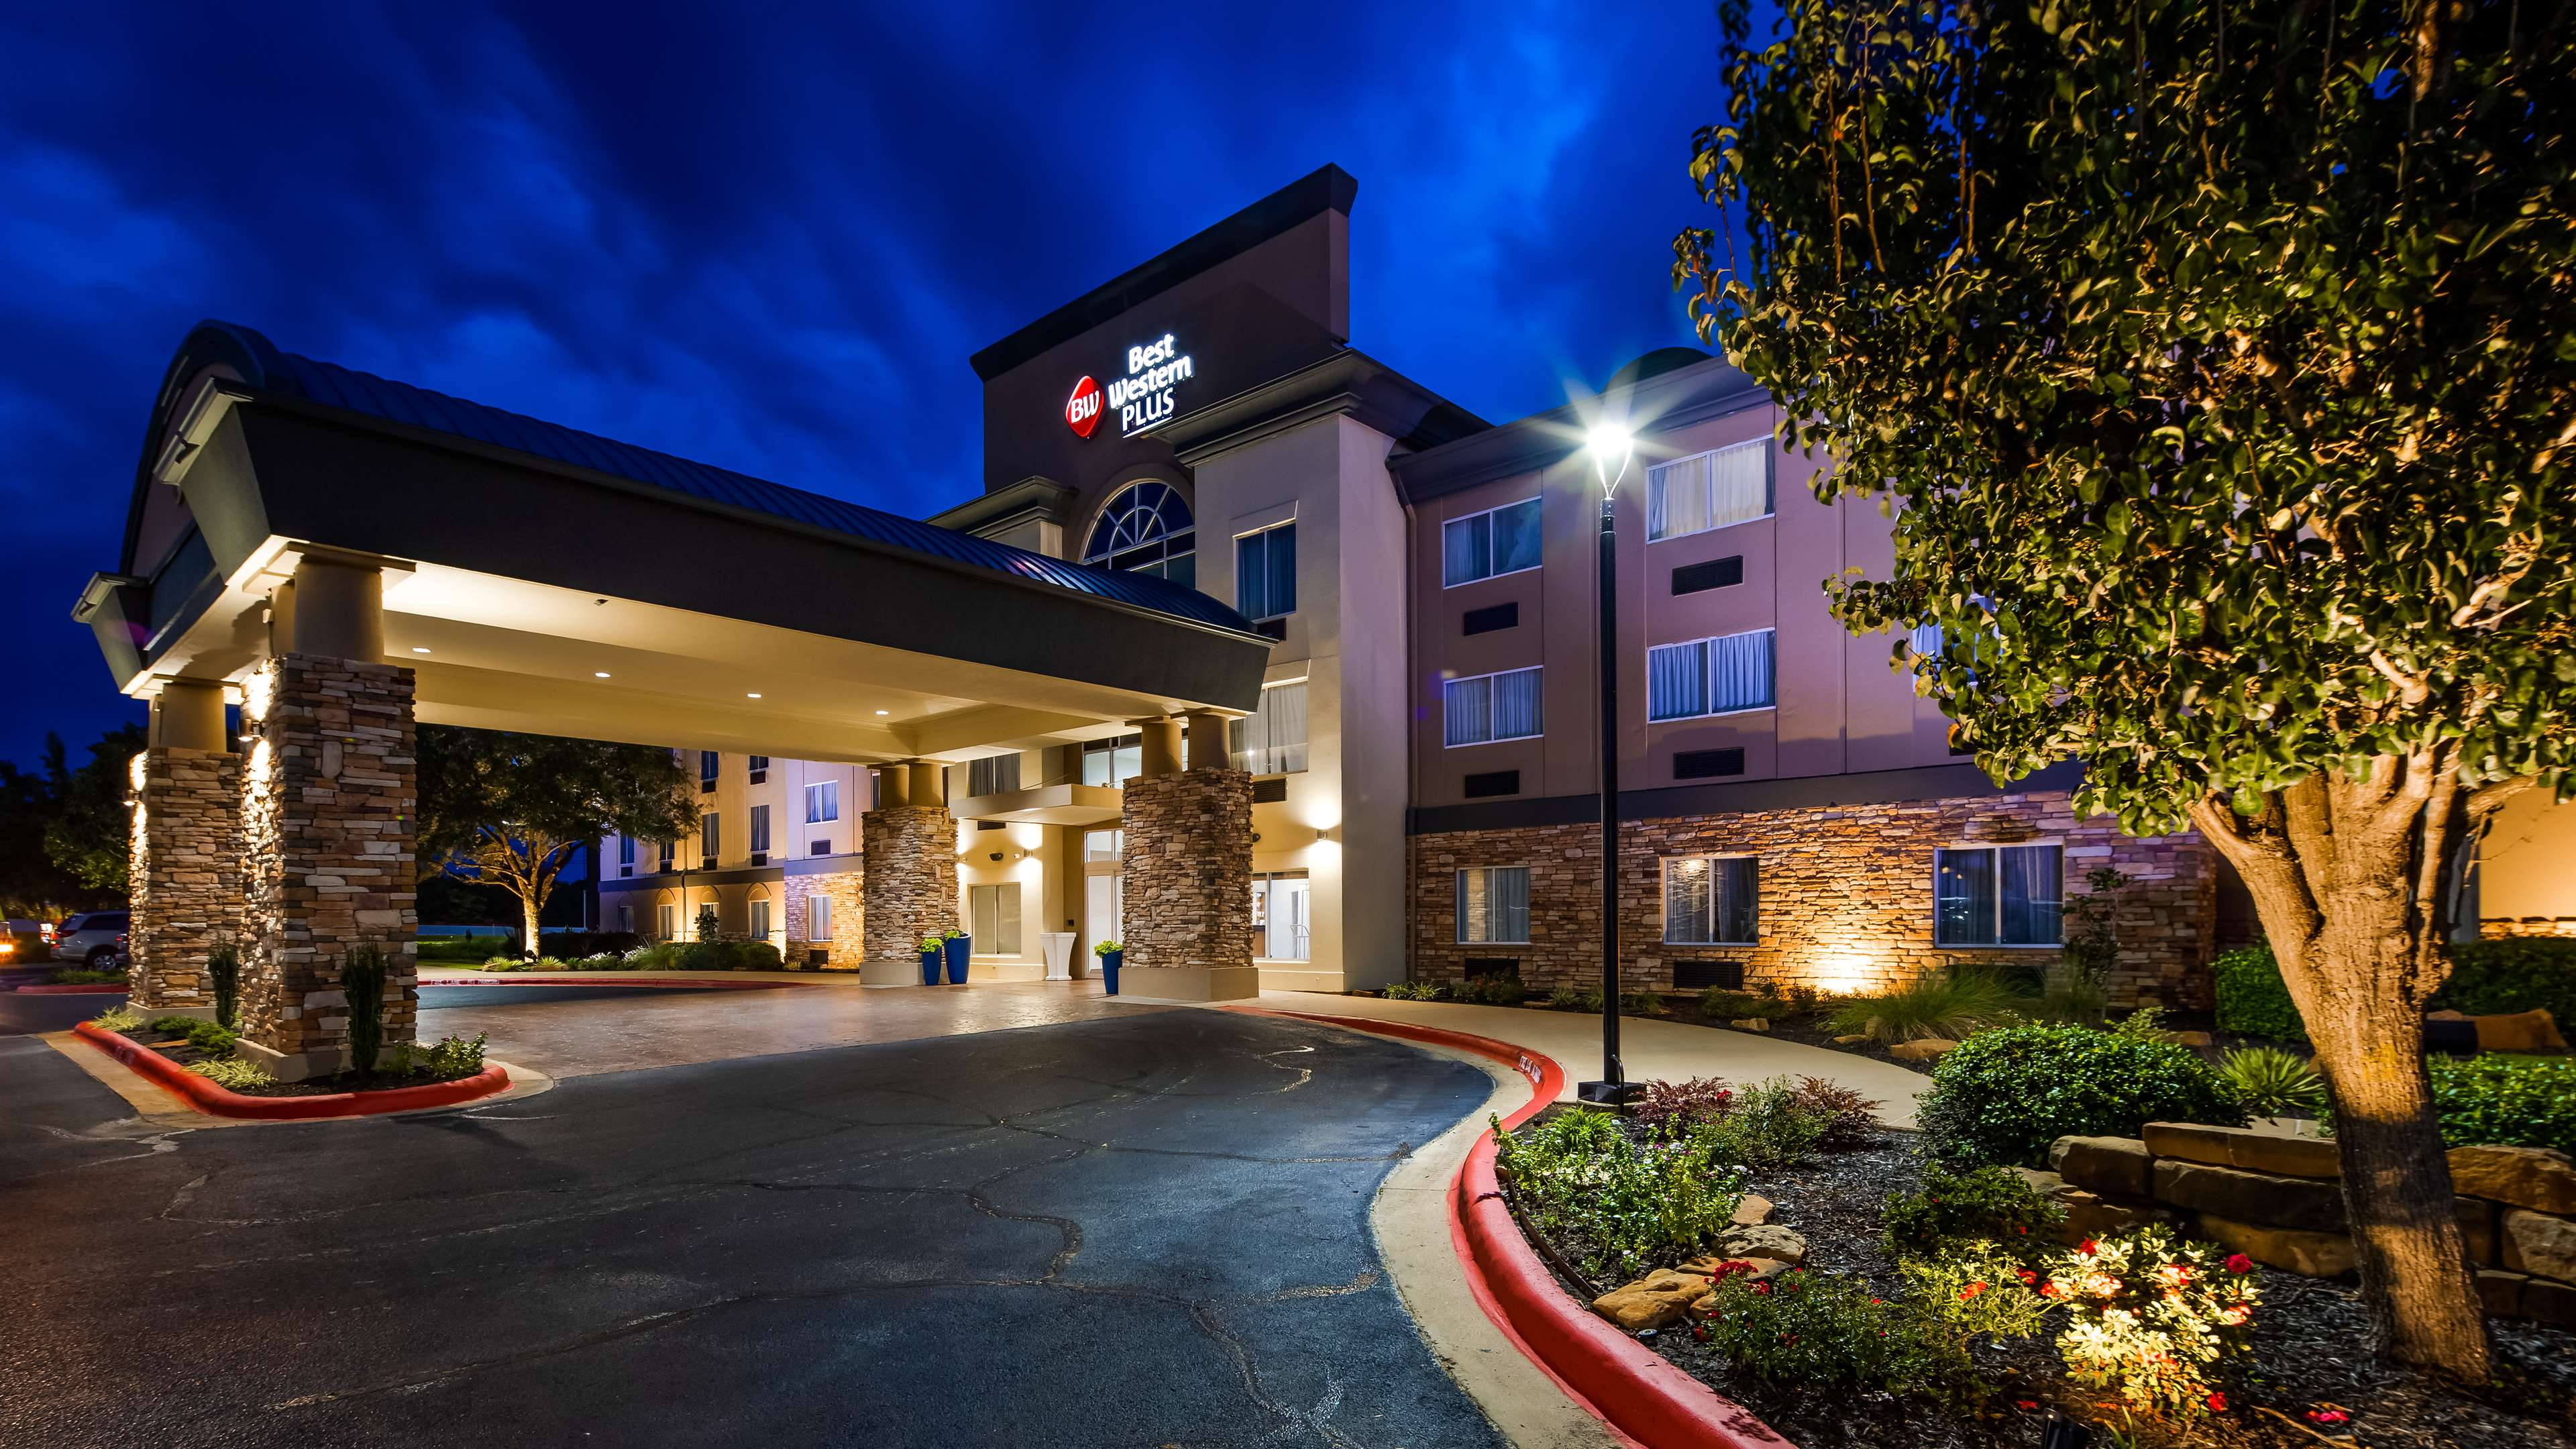 Welcome to the Best Western Plus Longview South Hotel!